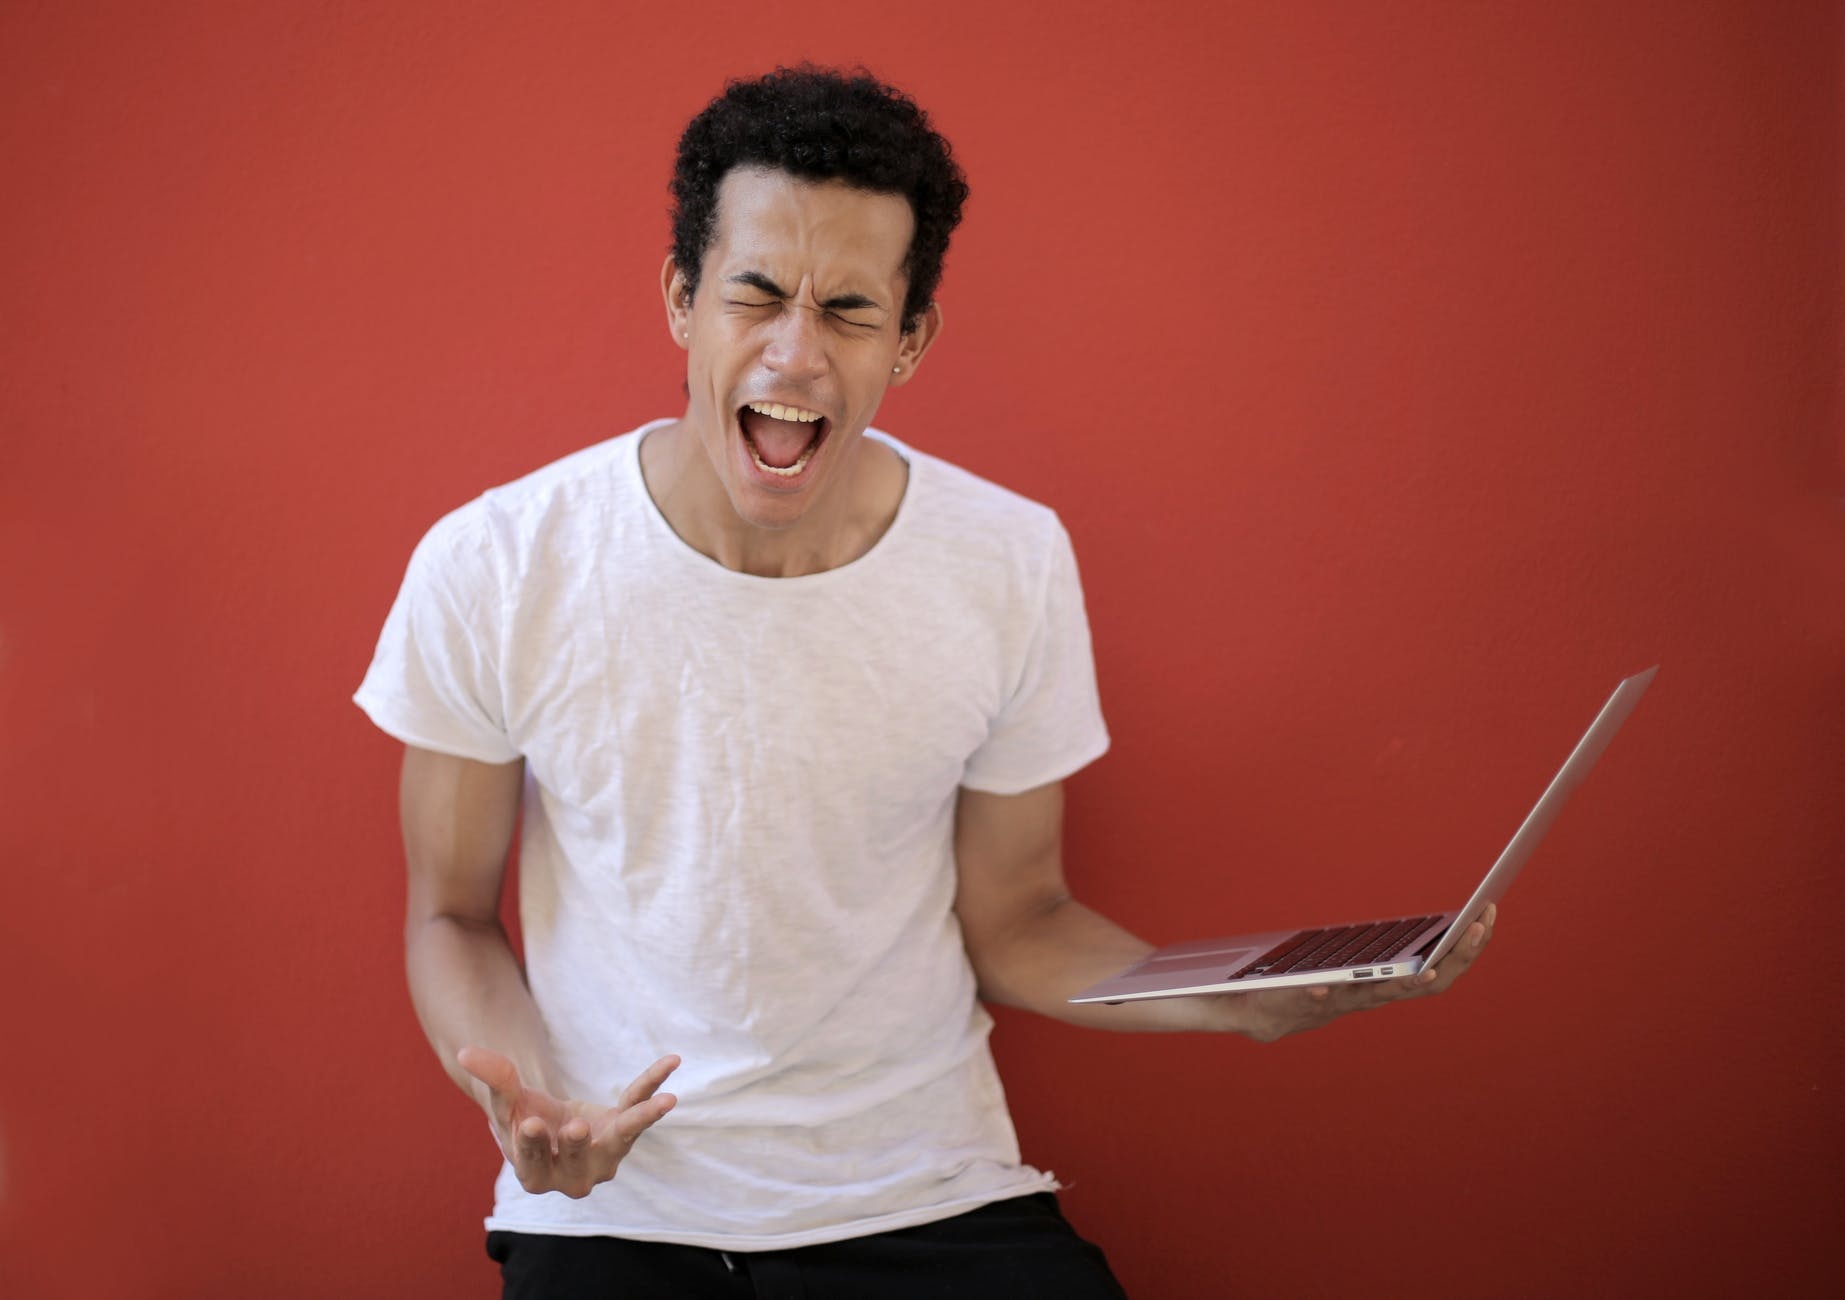 young ethnic male with laptop screaming